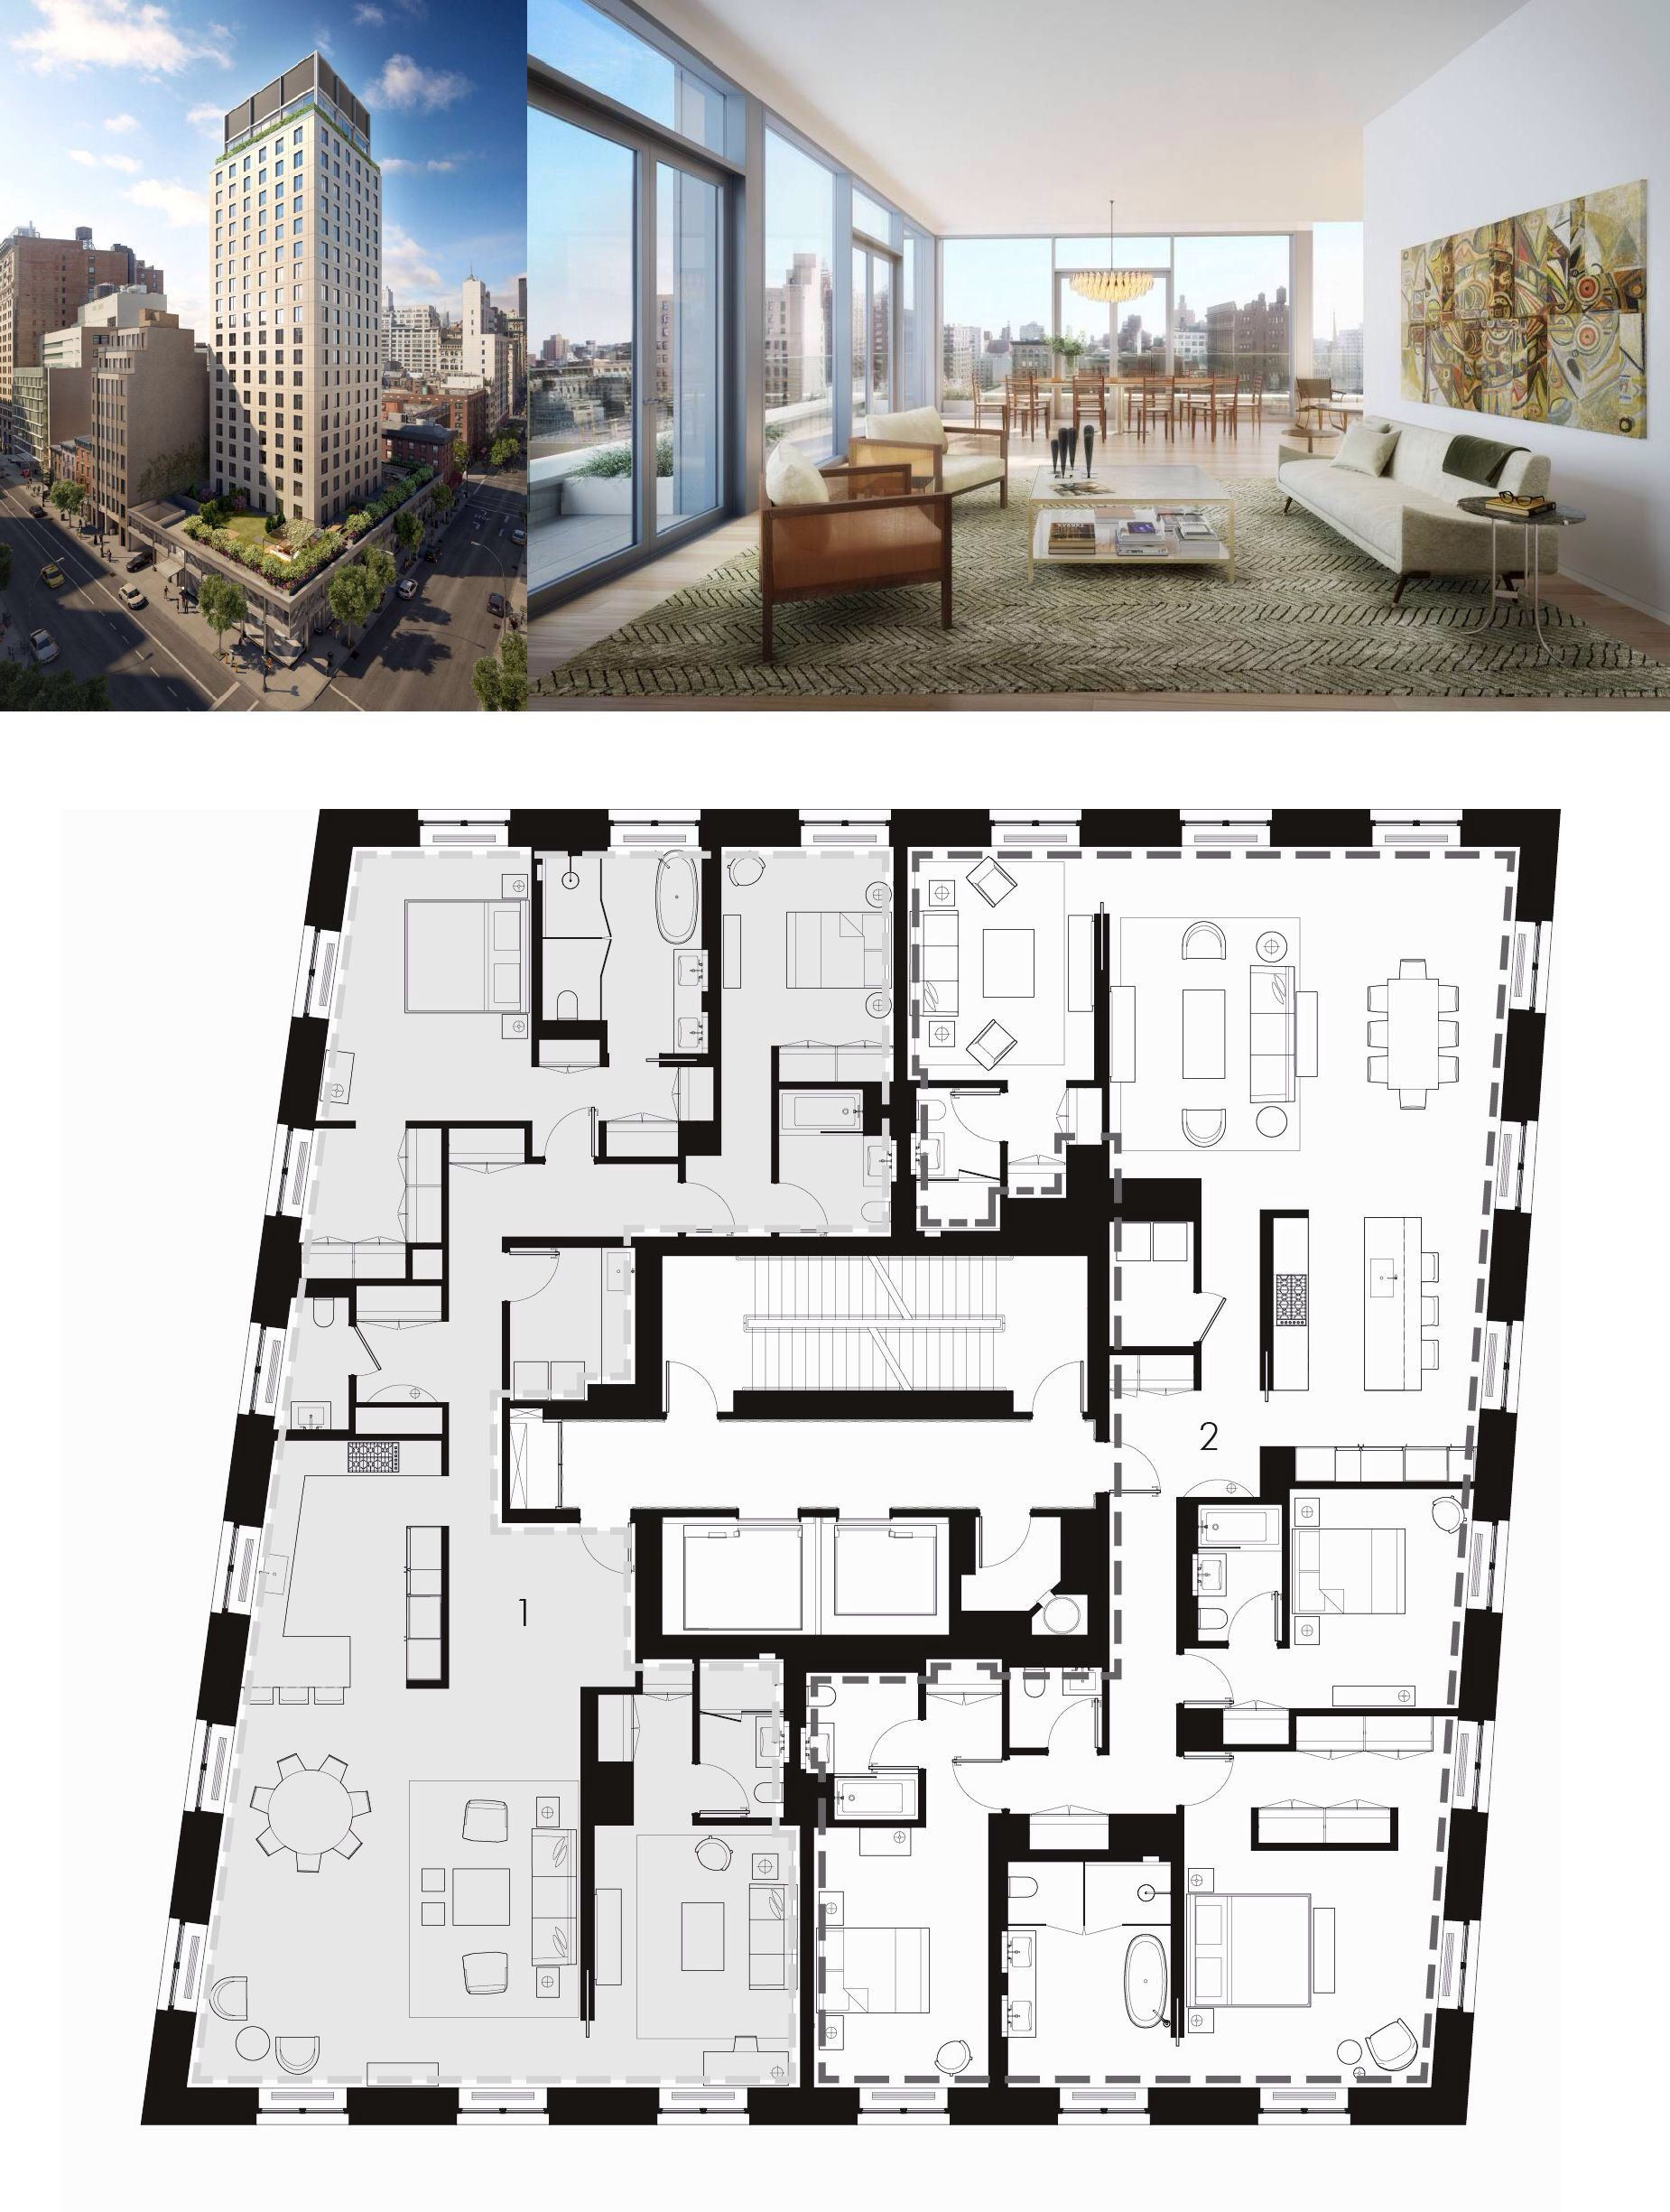 21 East 12th Street Selldorf Architects New York Penthouse Apartment Floor Plan Hotel Plan Home Building Design